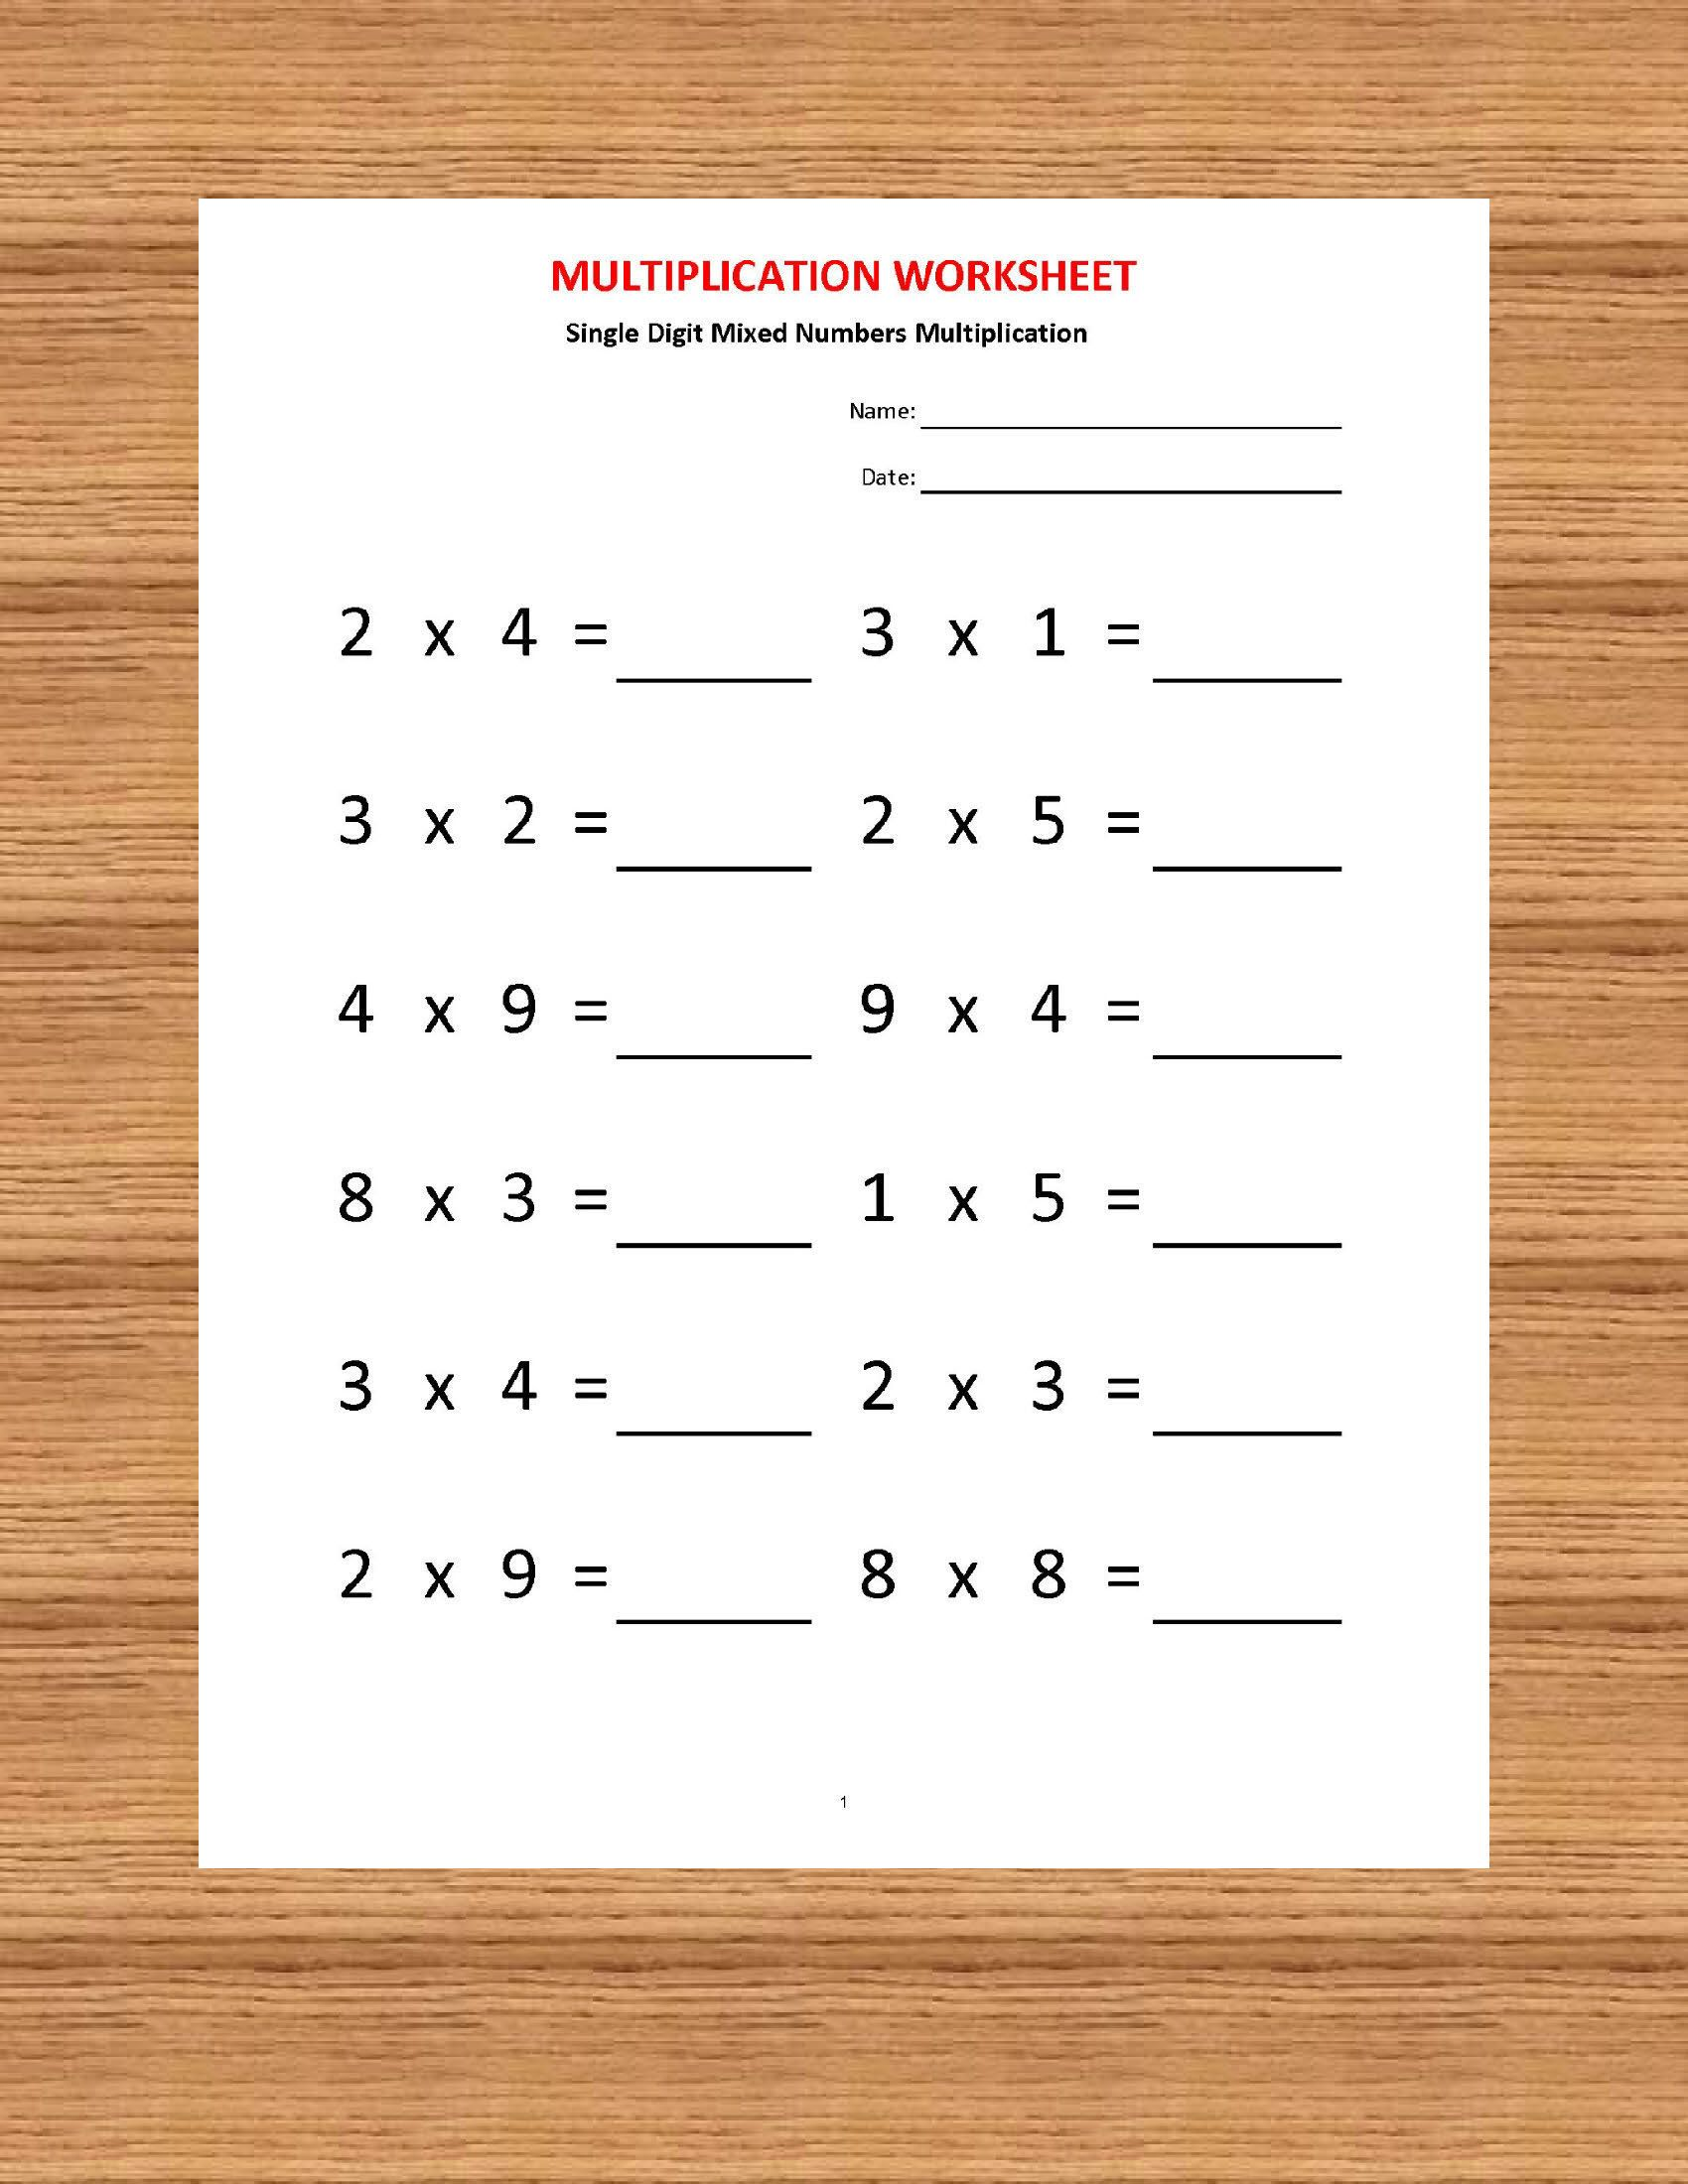 Multiplication Worksheets Printable worksheets   Etsy   2nd grade worksheets [ 2200 x 1700 Pixel ]